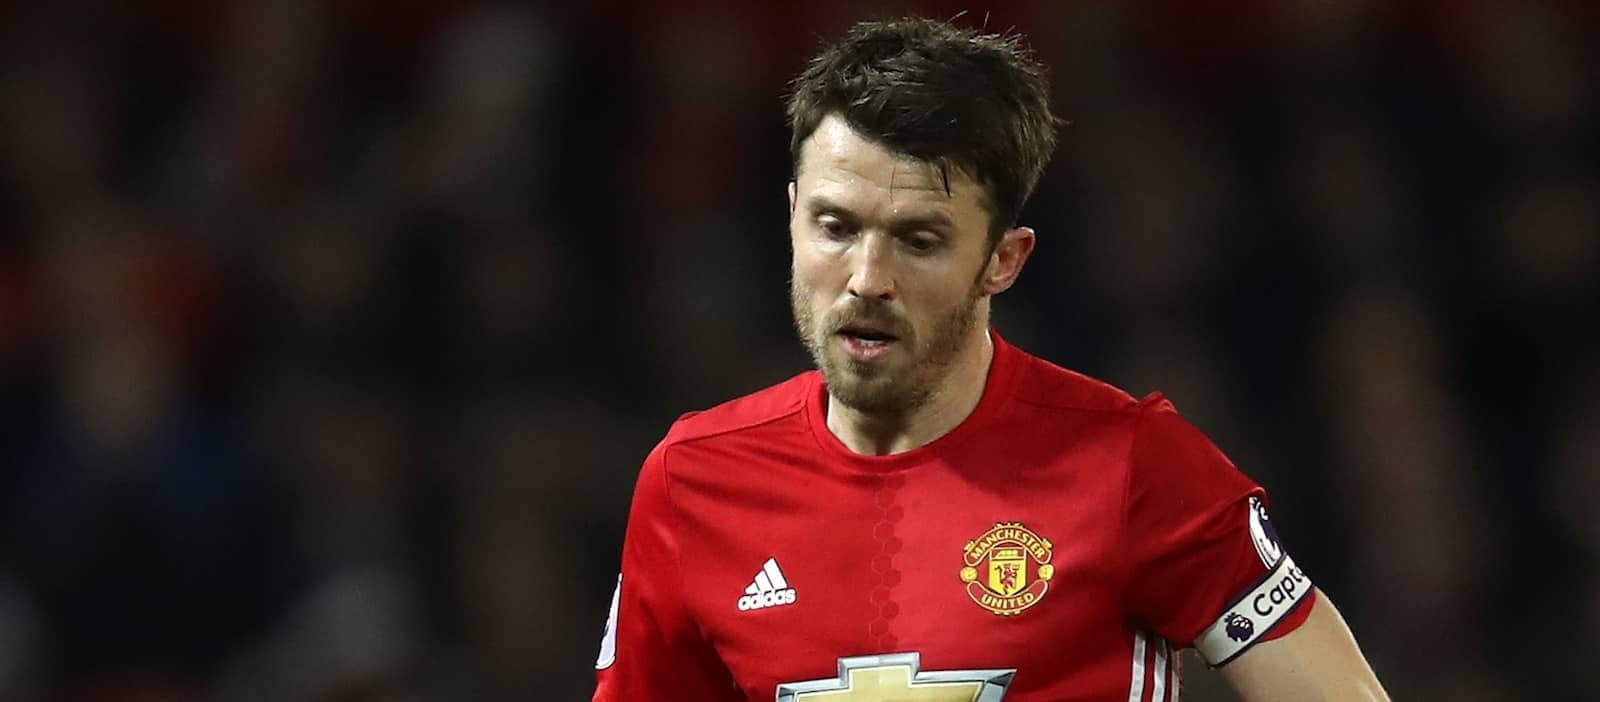 Sir Alex Ferguson will take charge of Man United once again in Michael Carrick's testimonial